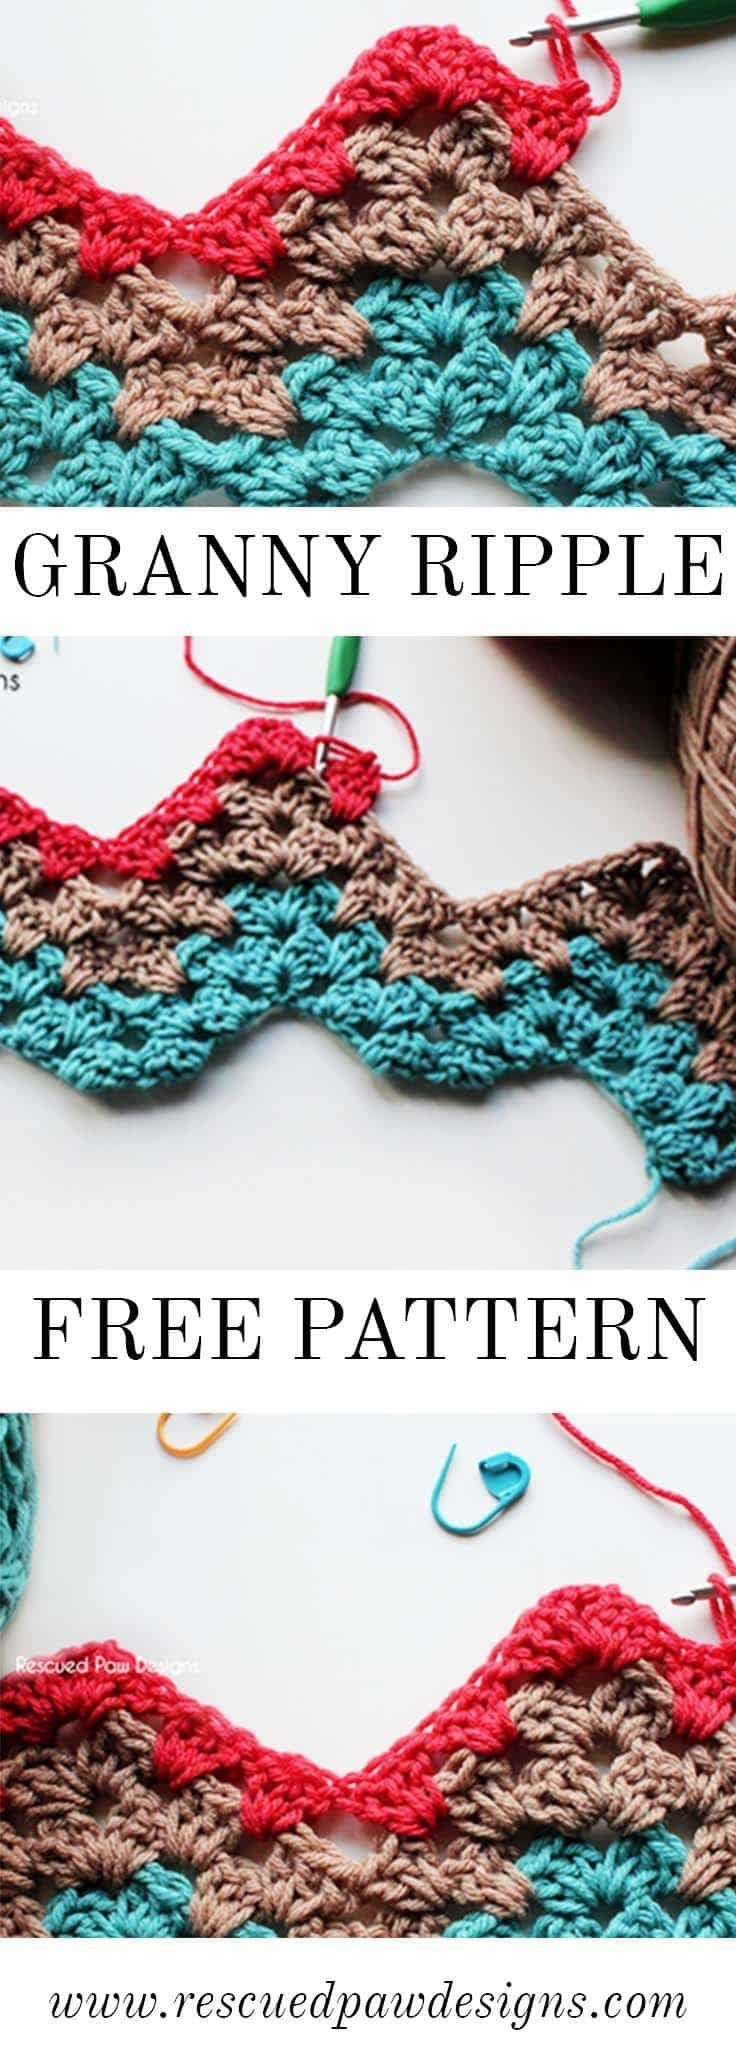 842 best Crochet Hacks, Stitches, Tips, & Tricks images on Pinterest ...